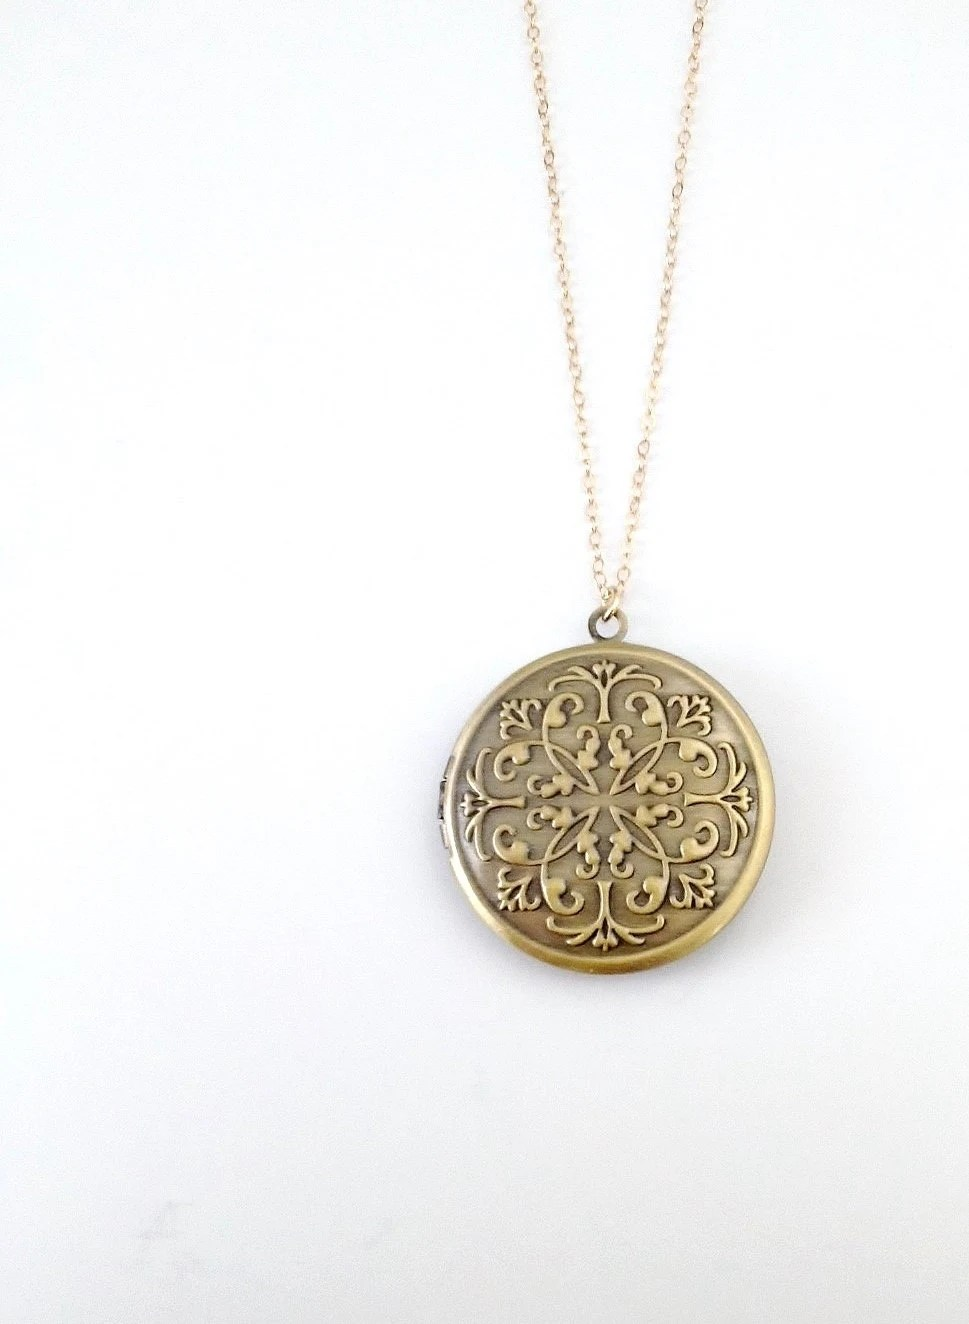 Antique Brass Locket Necklace Vintage Style Engraved Design